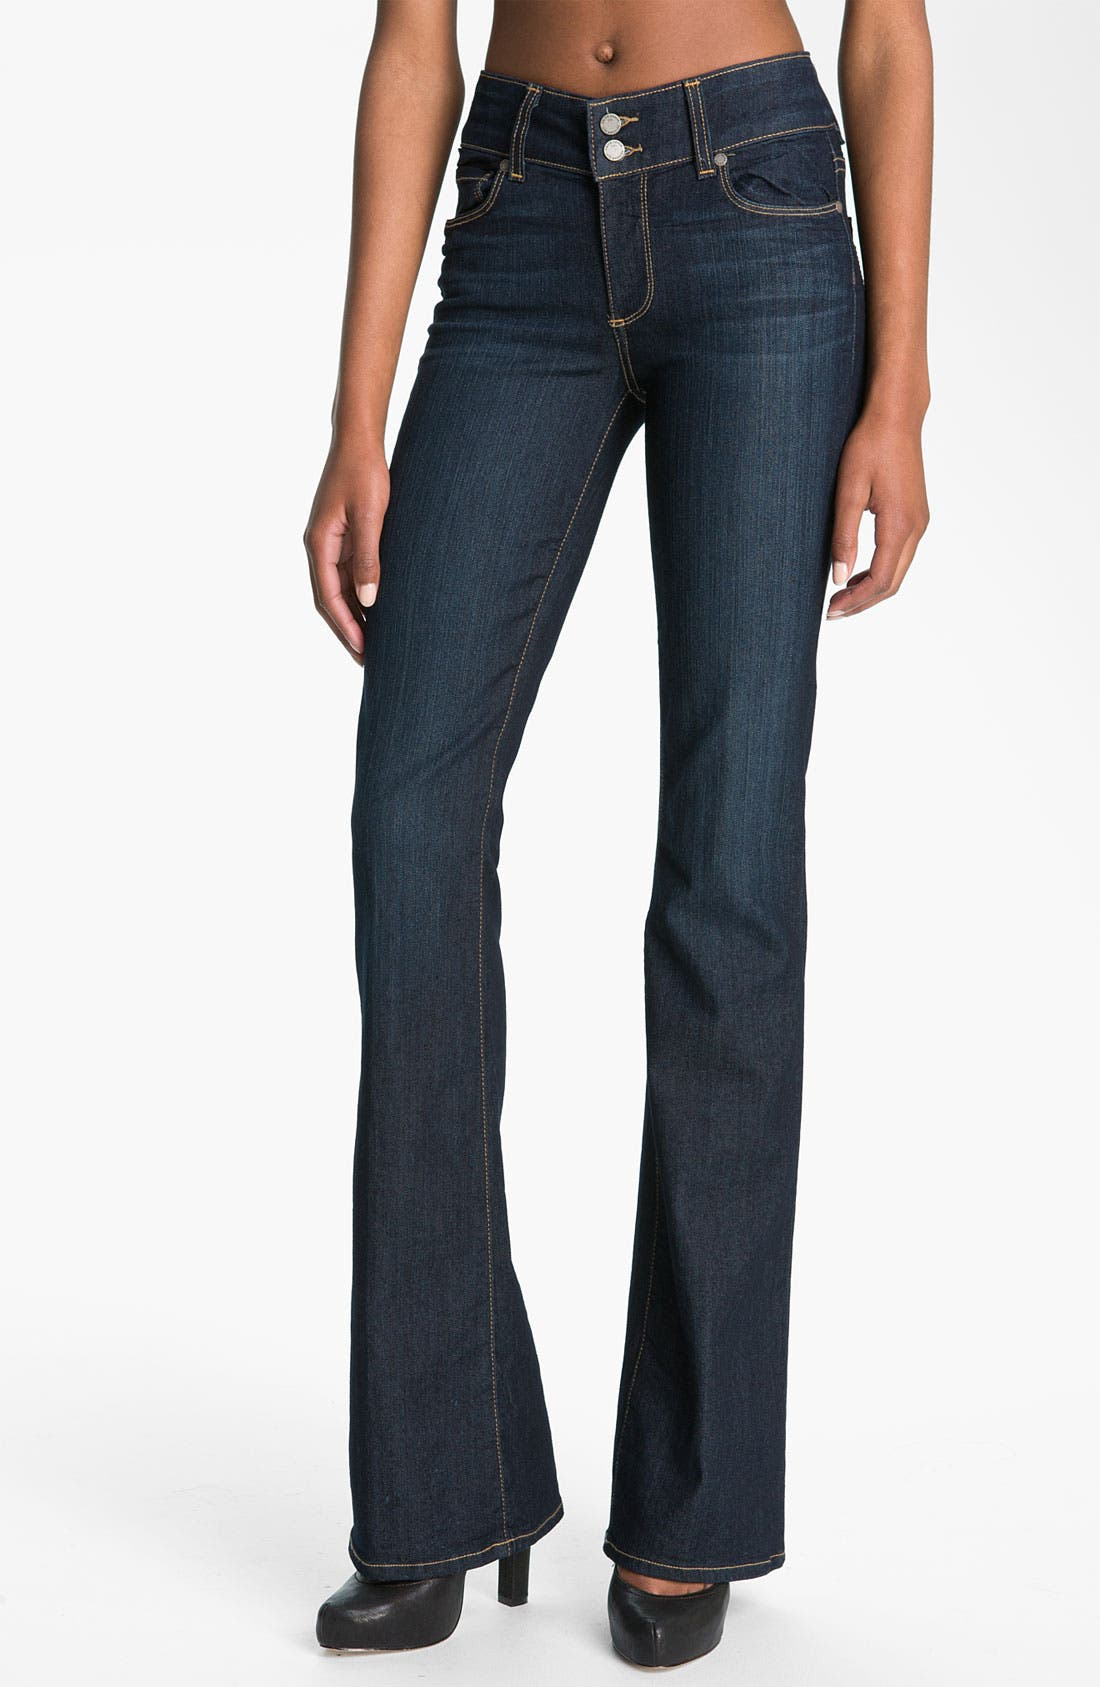 Main Image - PAIGE 'Hidden Hills' High Rise Bootcut Stretch Jeans (Stream)